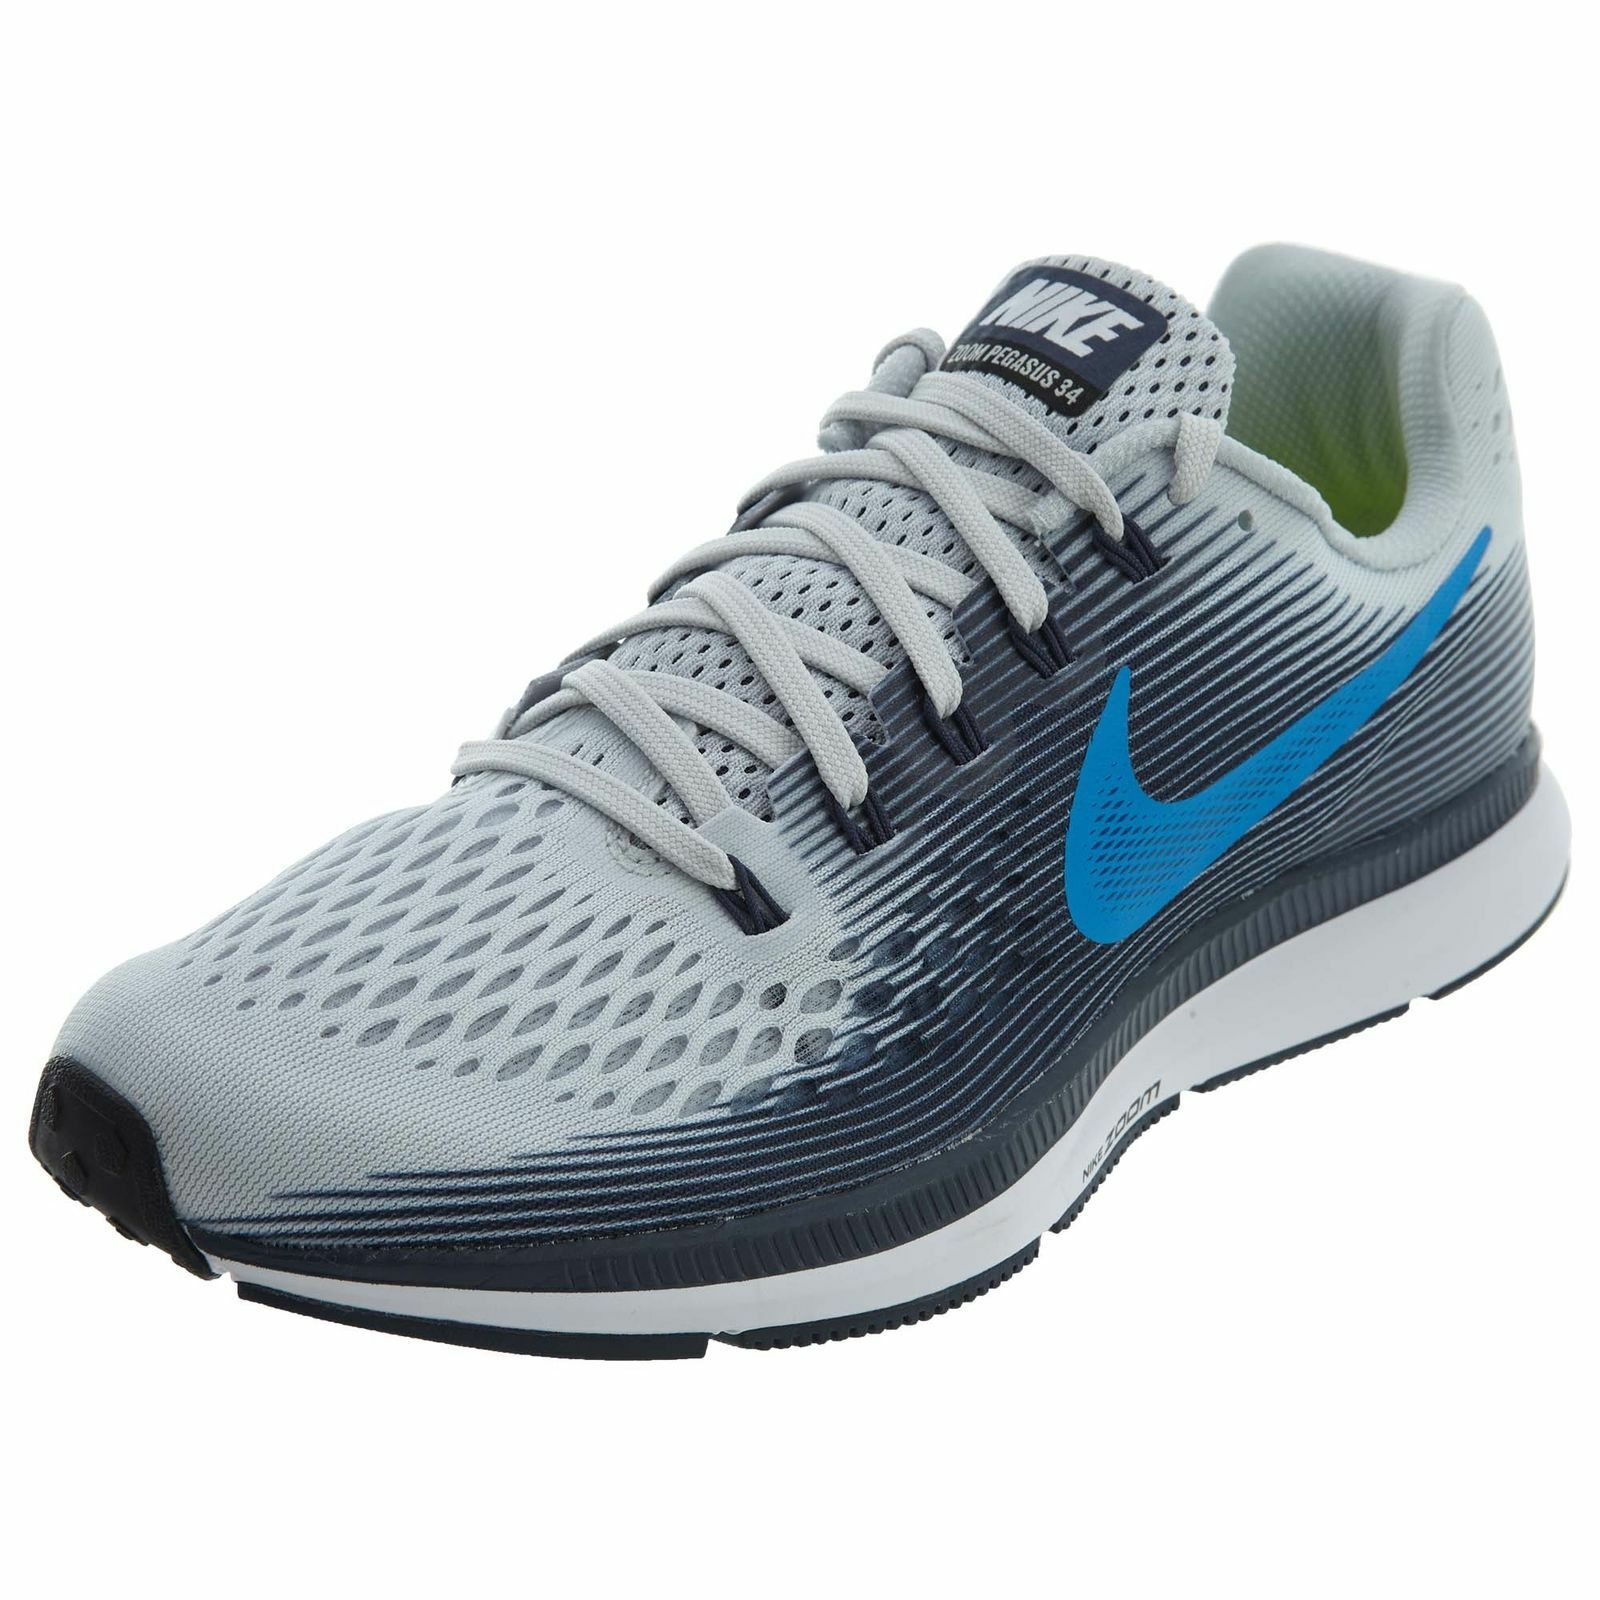 Nike Air Zoom Pegasus 34 Mens Mens Mens Running shoes 880555 008 Platinum bluee NEW Size 15 7ce6ff